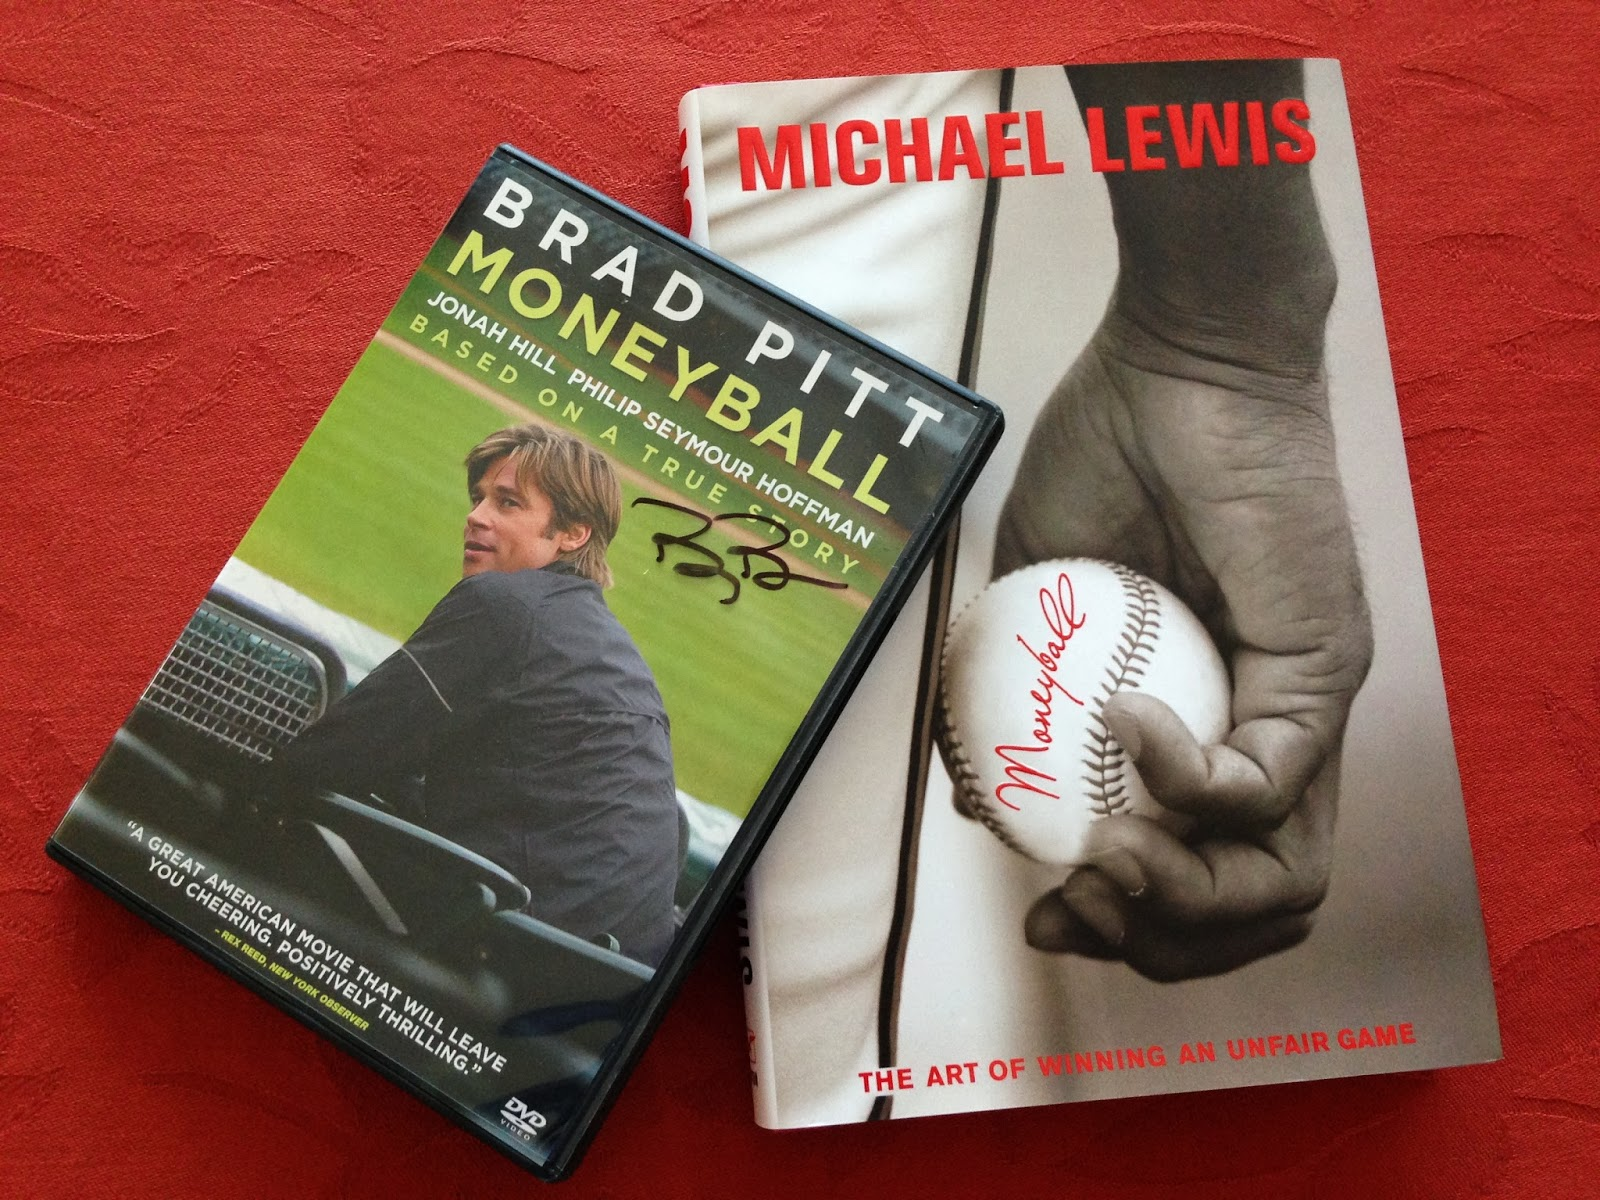 case analysis moneyball Moneyball (a): what are you paying for case solution,moneyball (a): what are you paying for case analysis, moneyball (a): what are you paying for case study solution, explores contextual elements major league baseball and is evidence to analytical examination alleged market failure in this sport rewritten version of the.